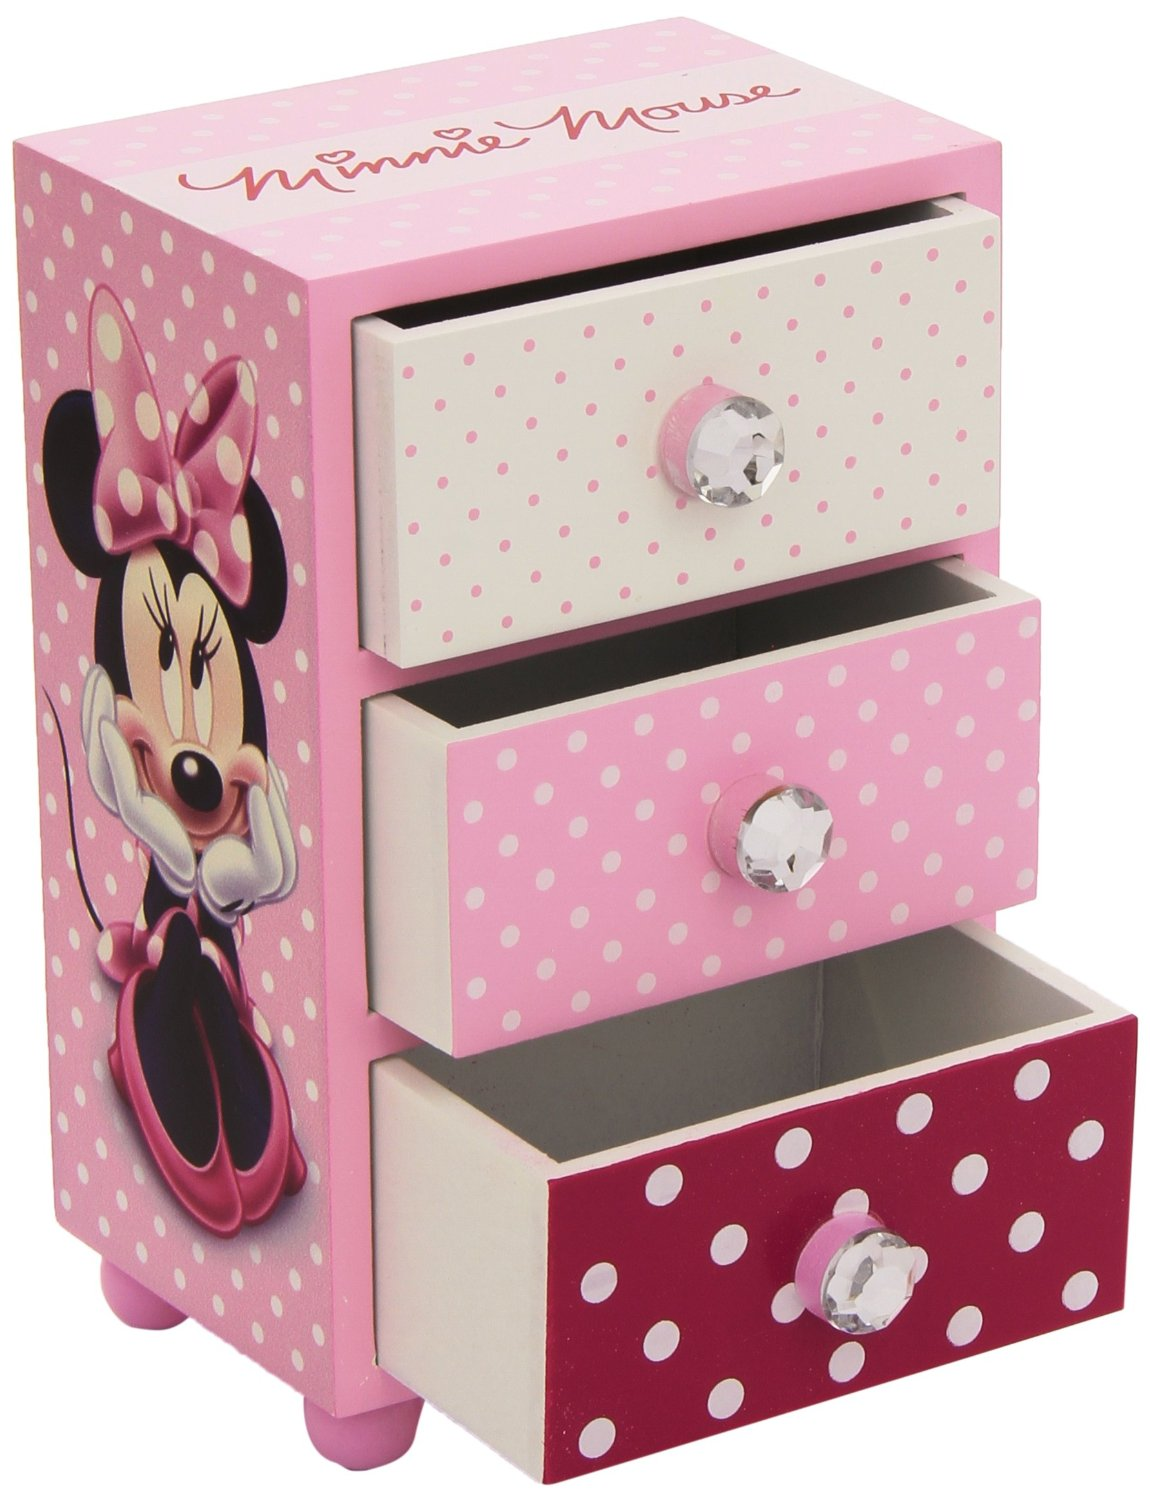 minnie mouse schlafzimmer 3 schublade aufbewahrung kinder holz box rosa ca ebay. Black Bedroom Furniture Sets. Home Design Ideas